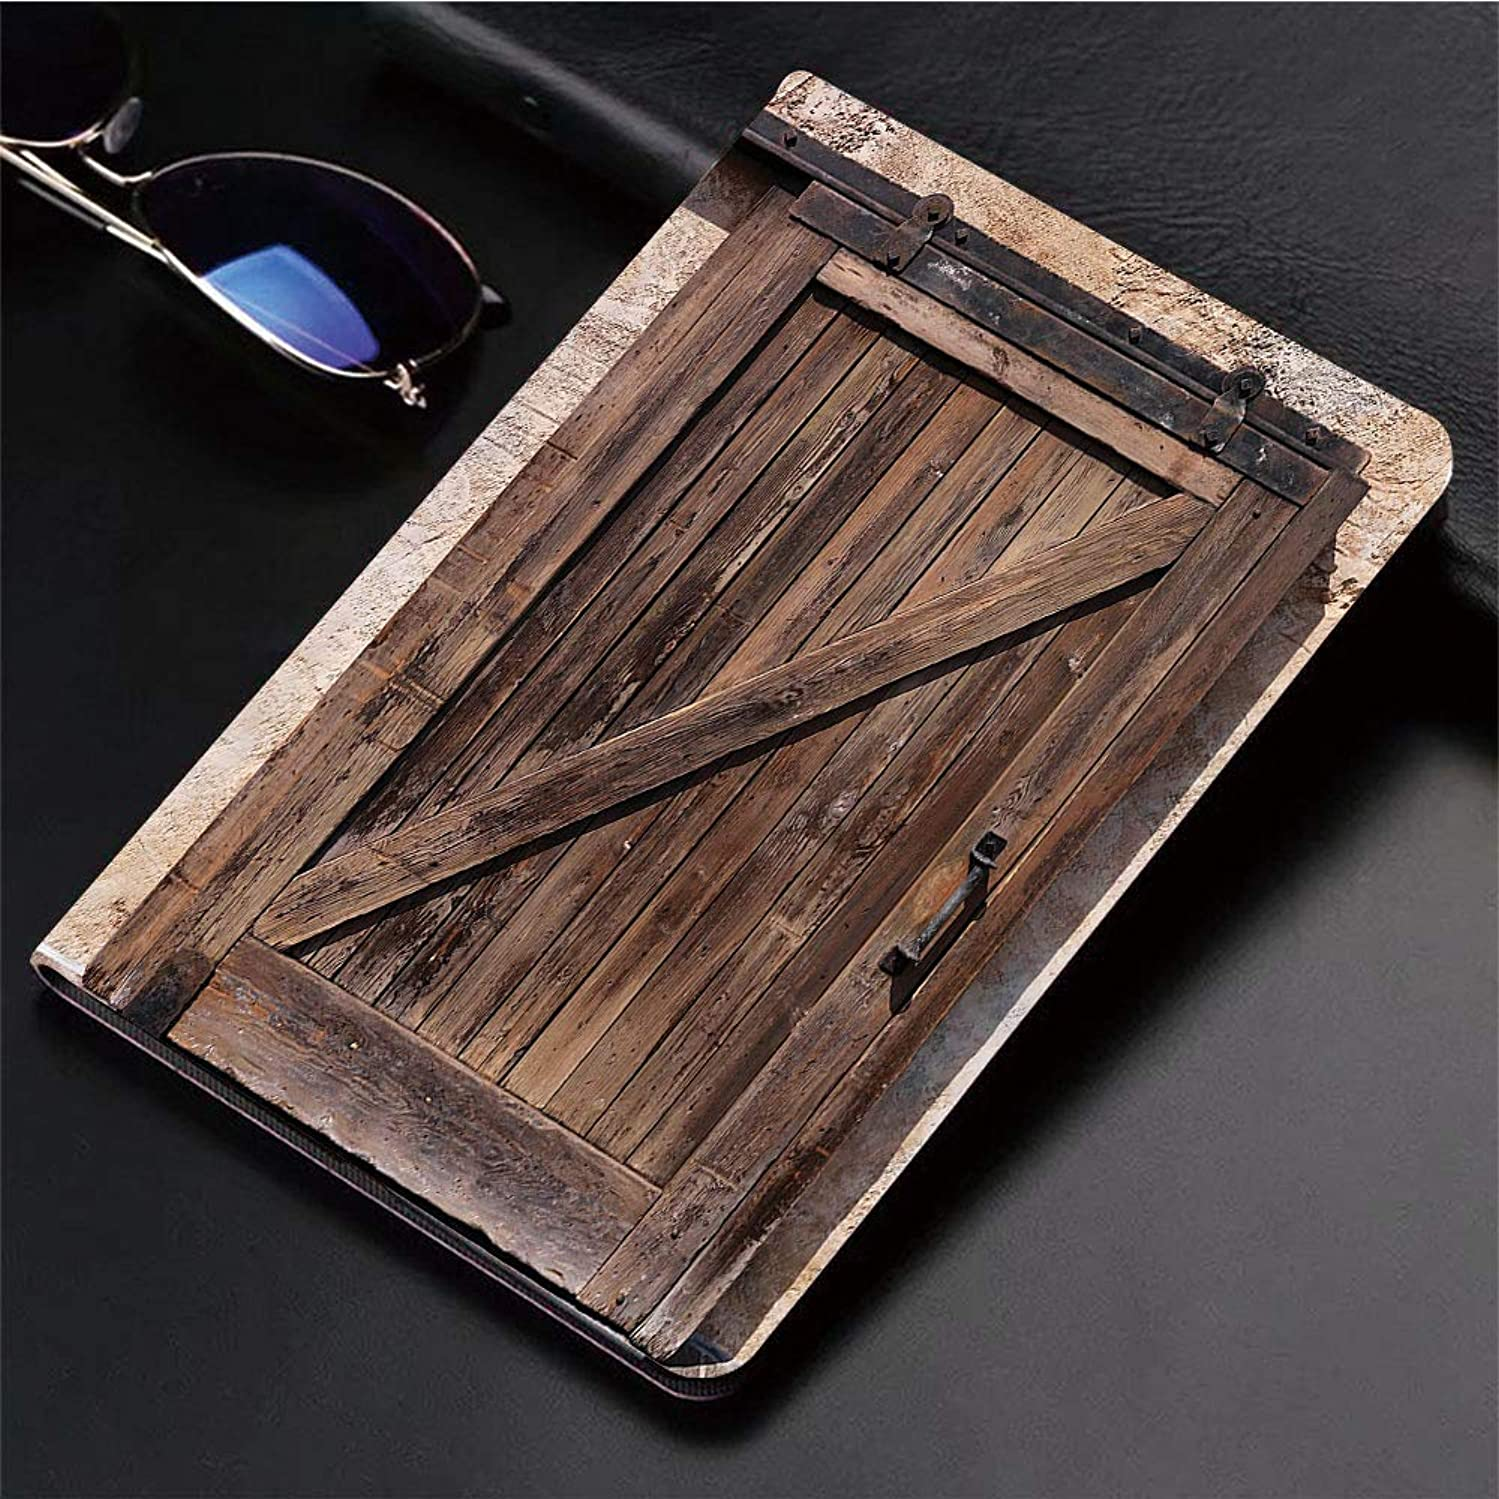 Compatible with 3D Printed iPad 9.7 Case,Aged Sliding Door with Rustic Texture Authentic Vintage Archit,Lightweight Anti-Scratch Shell Auto Sleep/Wake, Back Protector Cover iPad 9.7